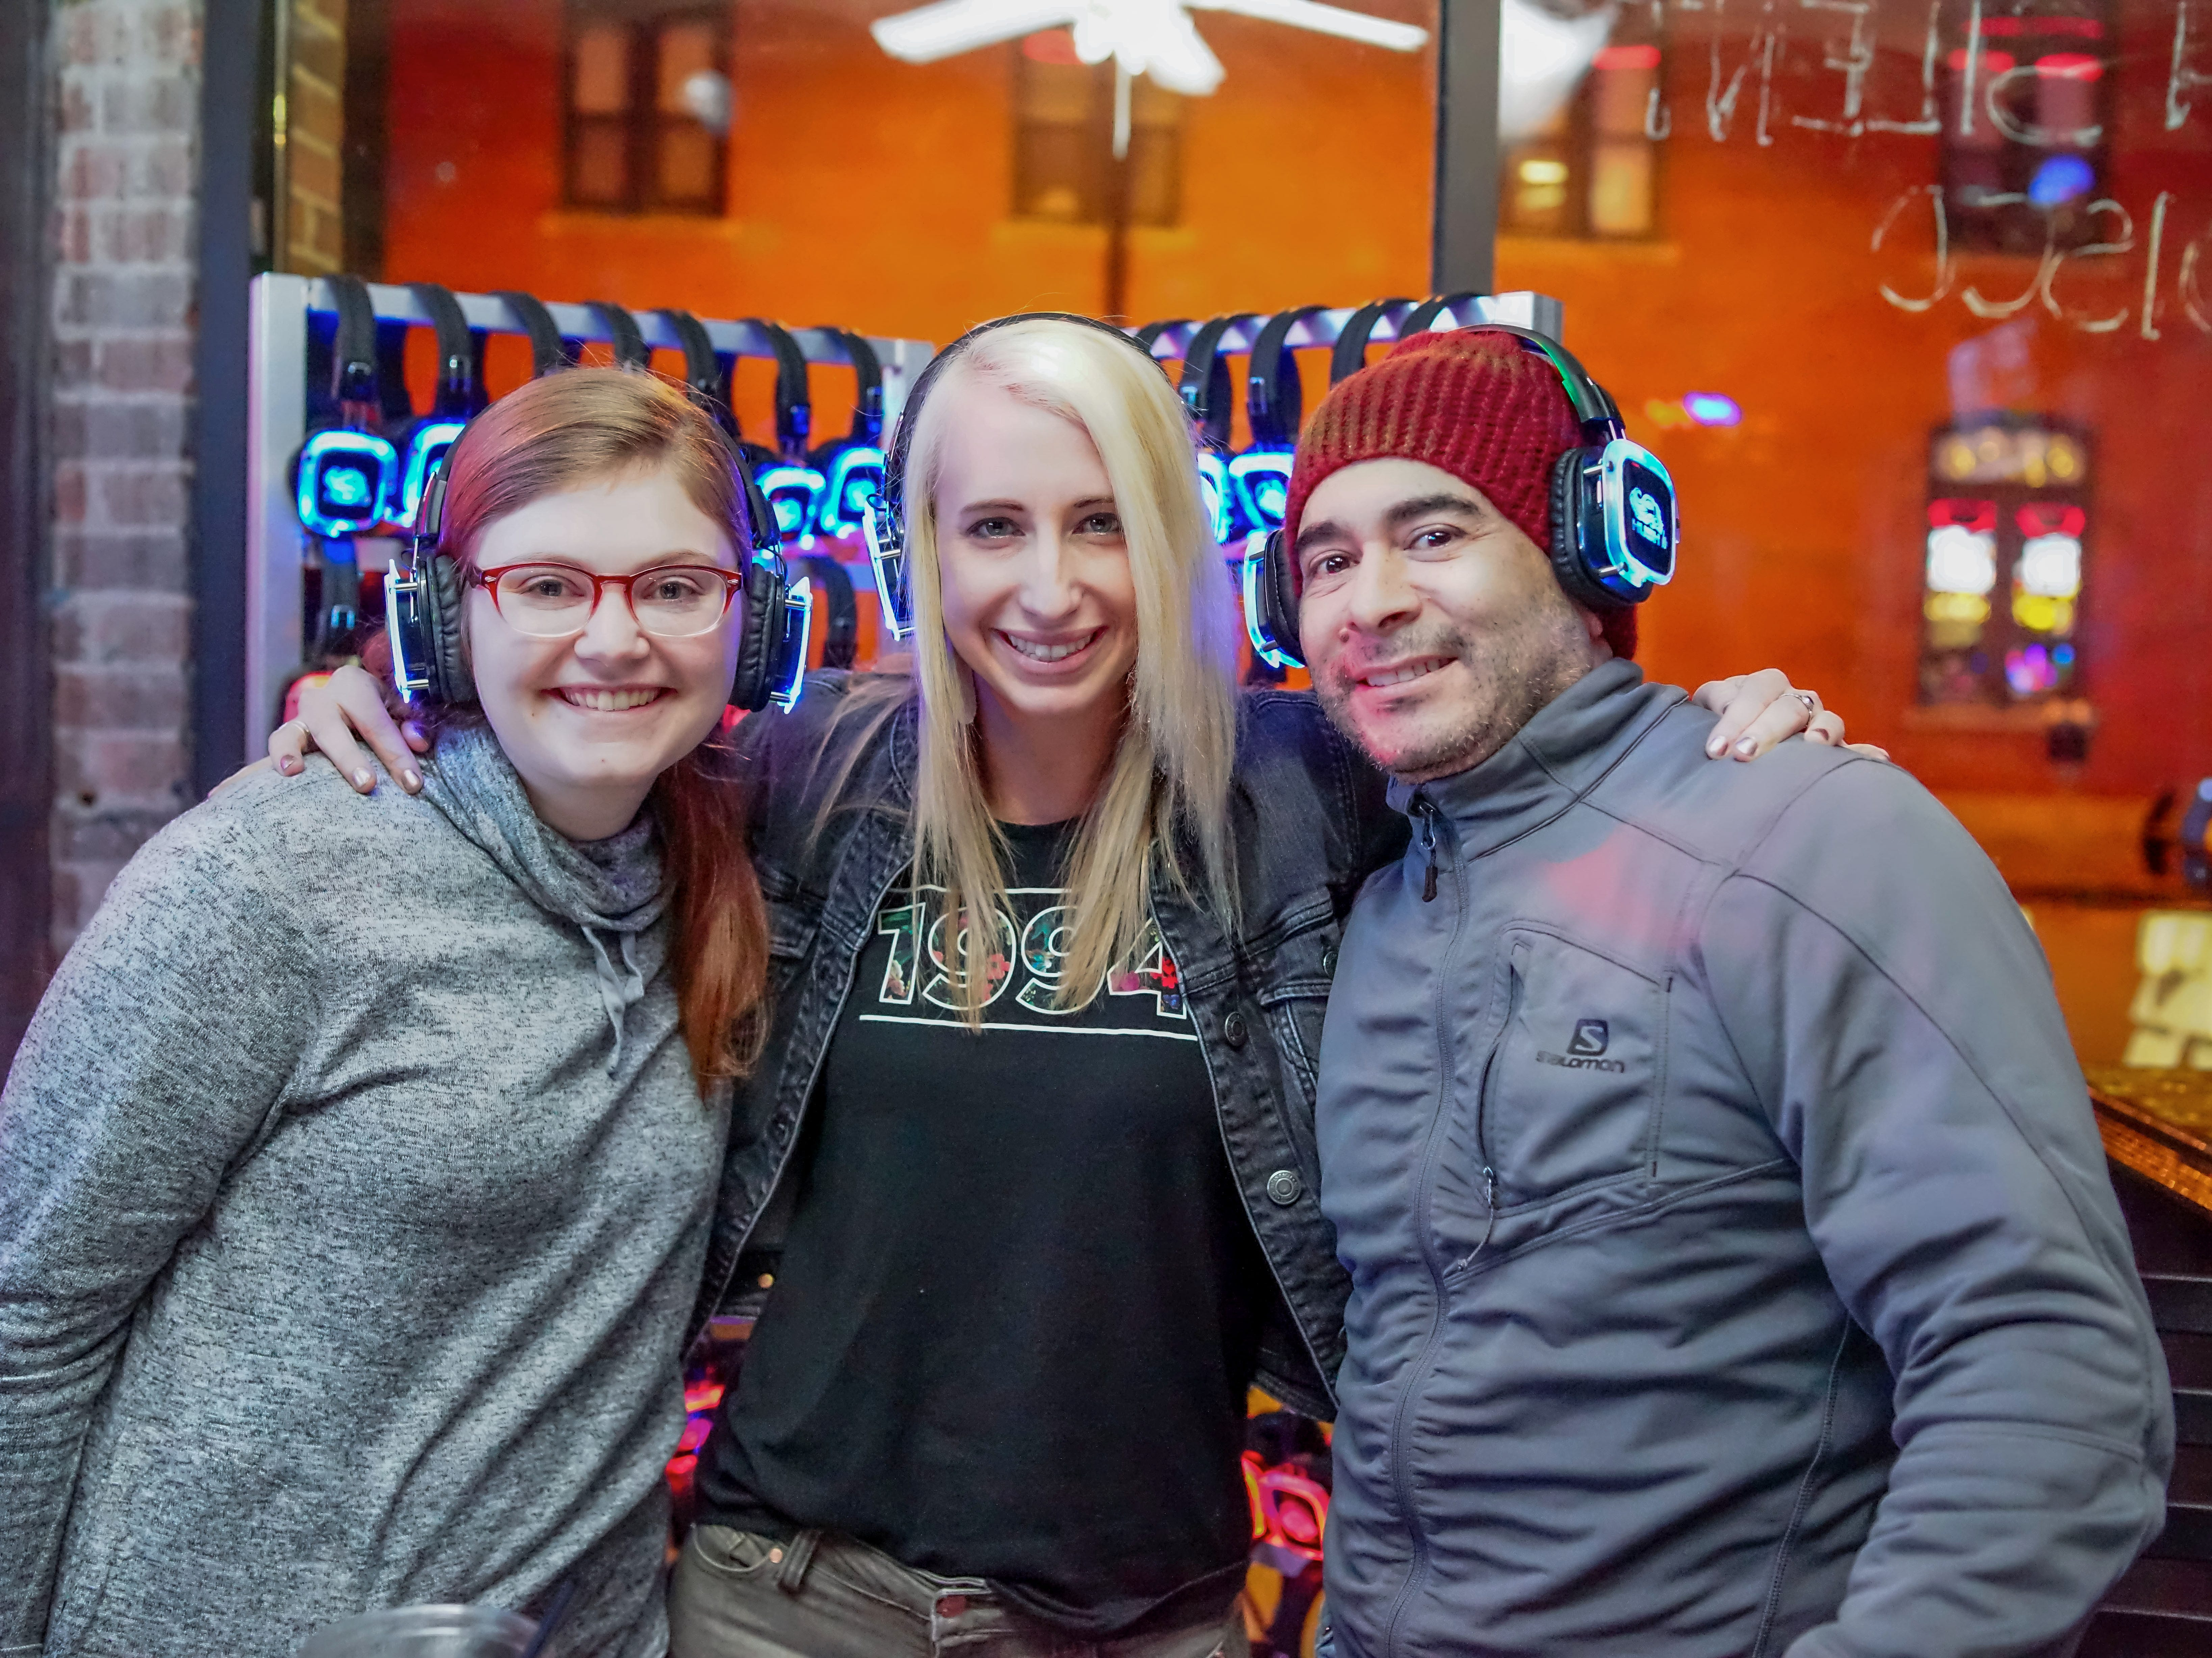 Jessica Sawatzky, 24, Vincent Munoz, 33, and Lydia Richards, 22, all of Des Moines, having a fun time, Friday, December 28th, at Hush.